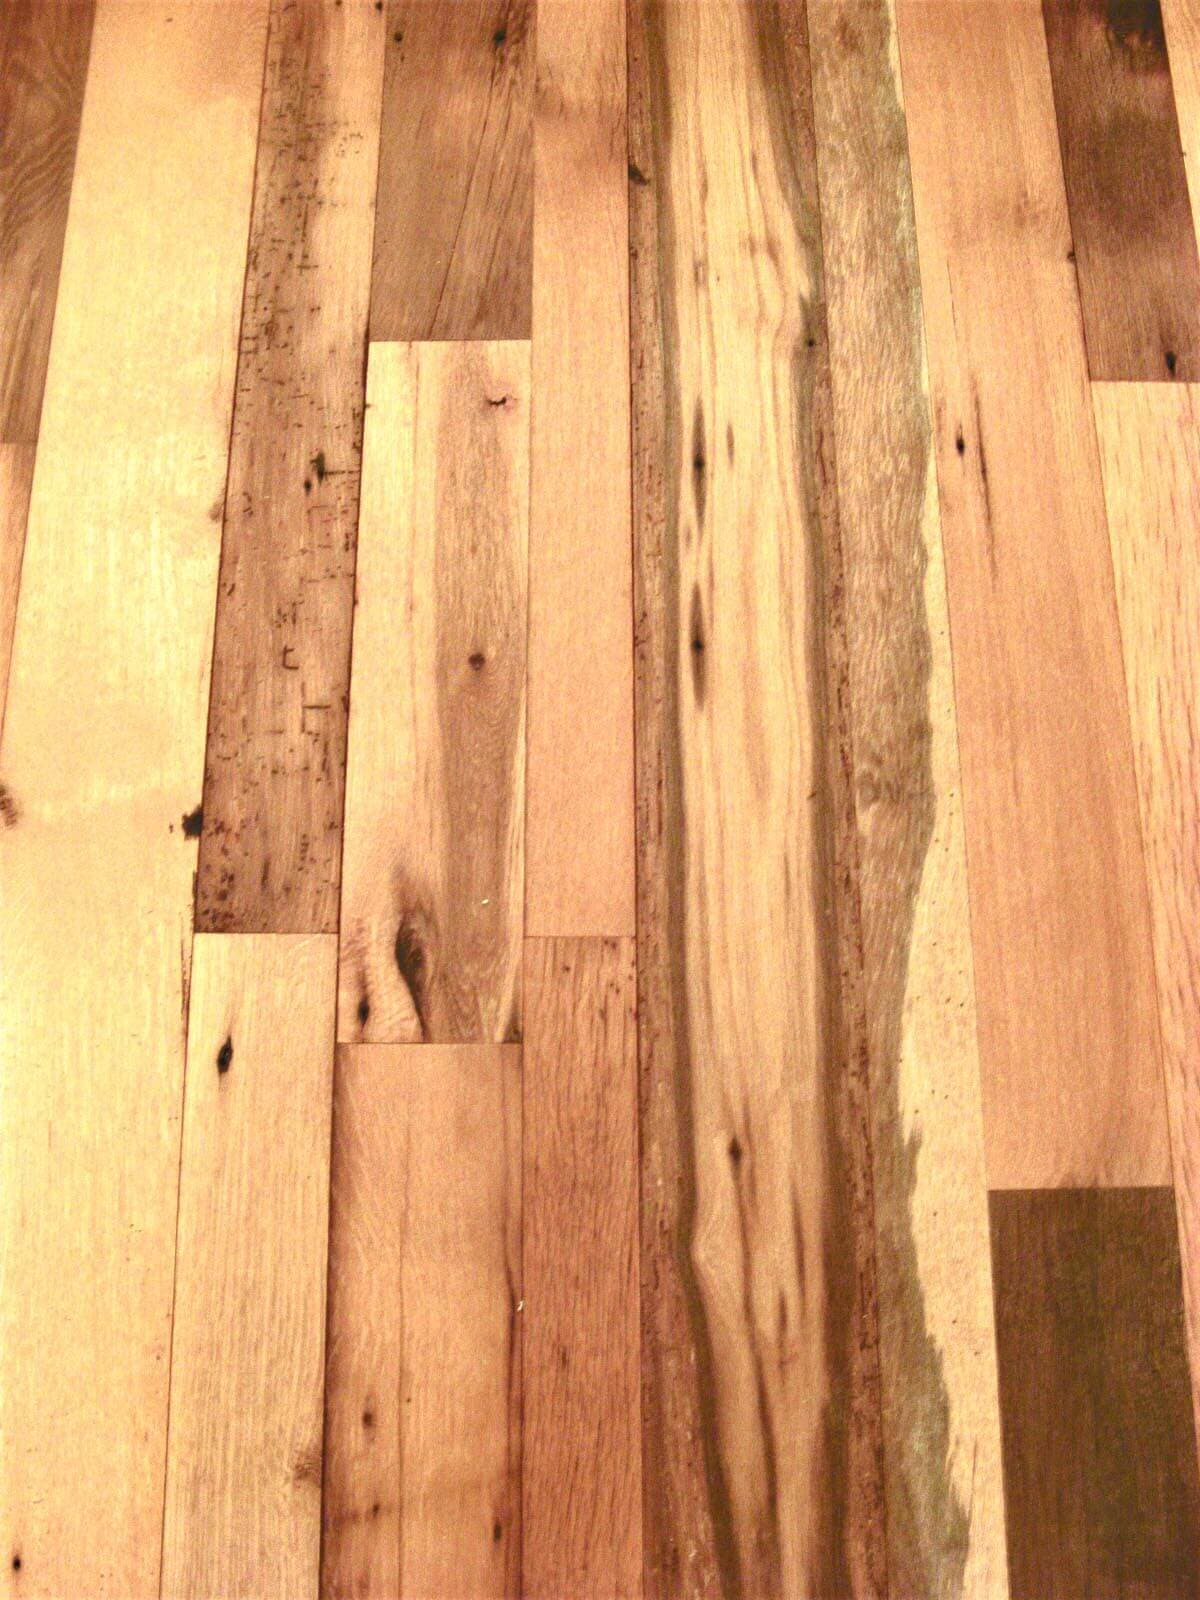 classic mixed hardwood flooring with lively contrasts